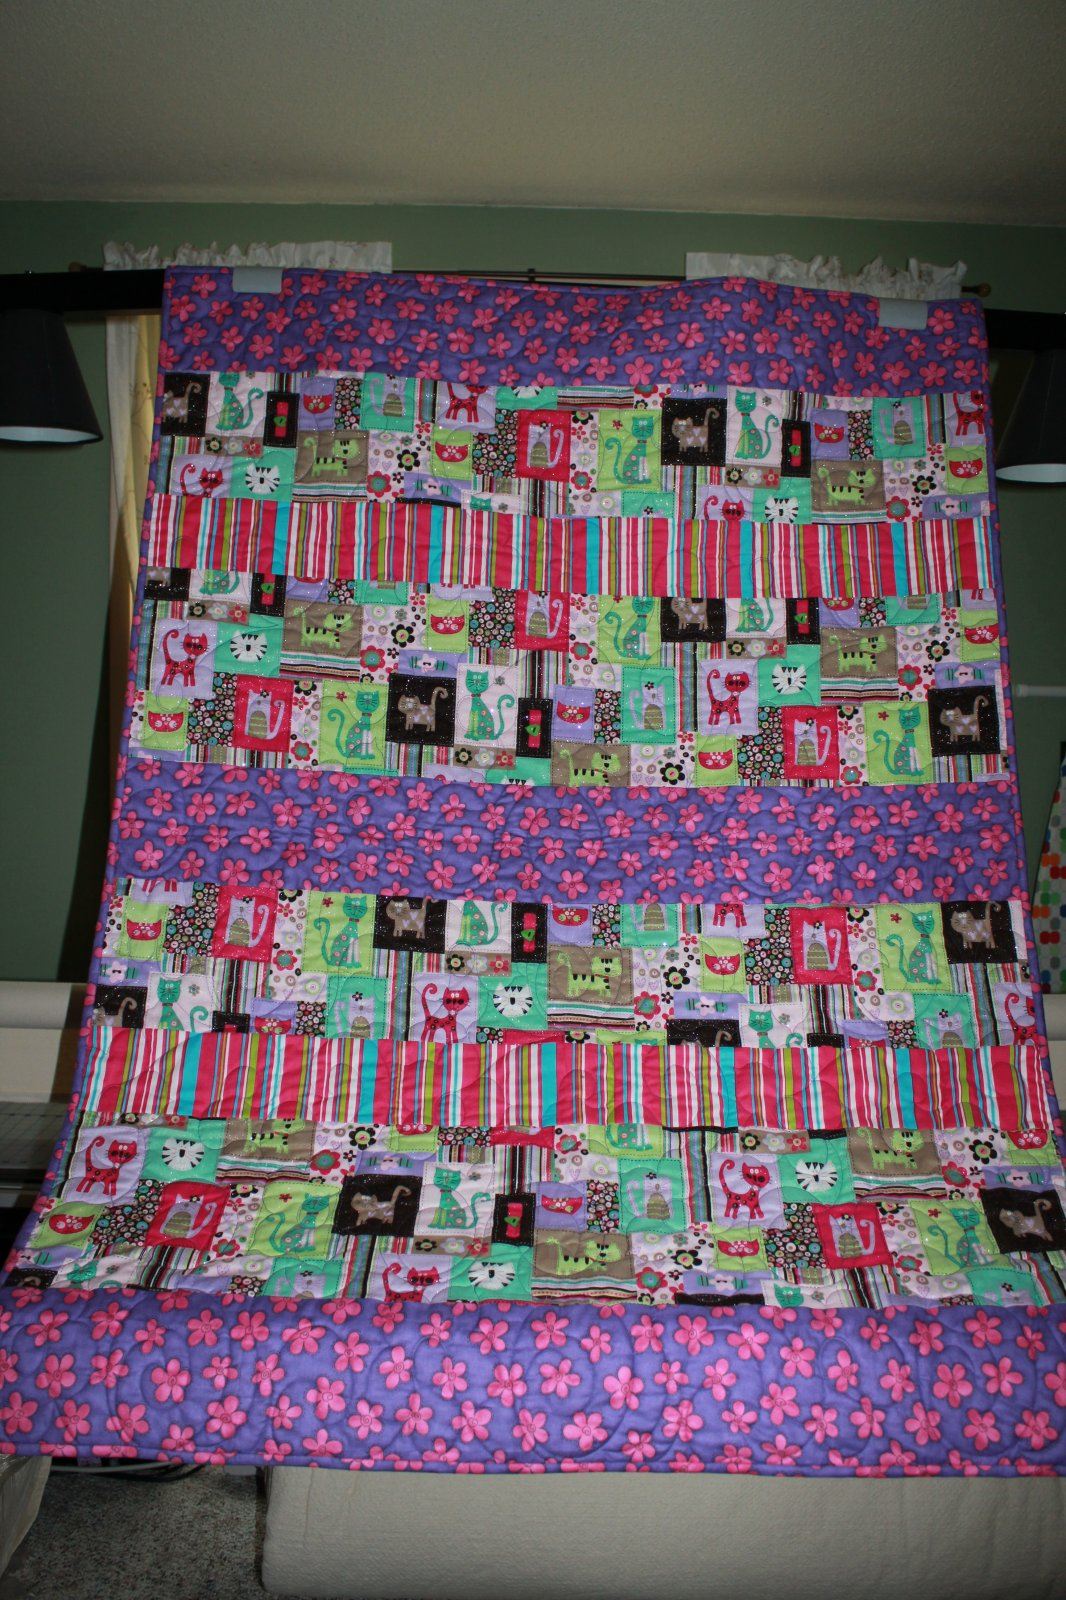 Sparkly Cats and Kittens Quilt in pink and purple